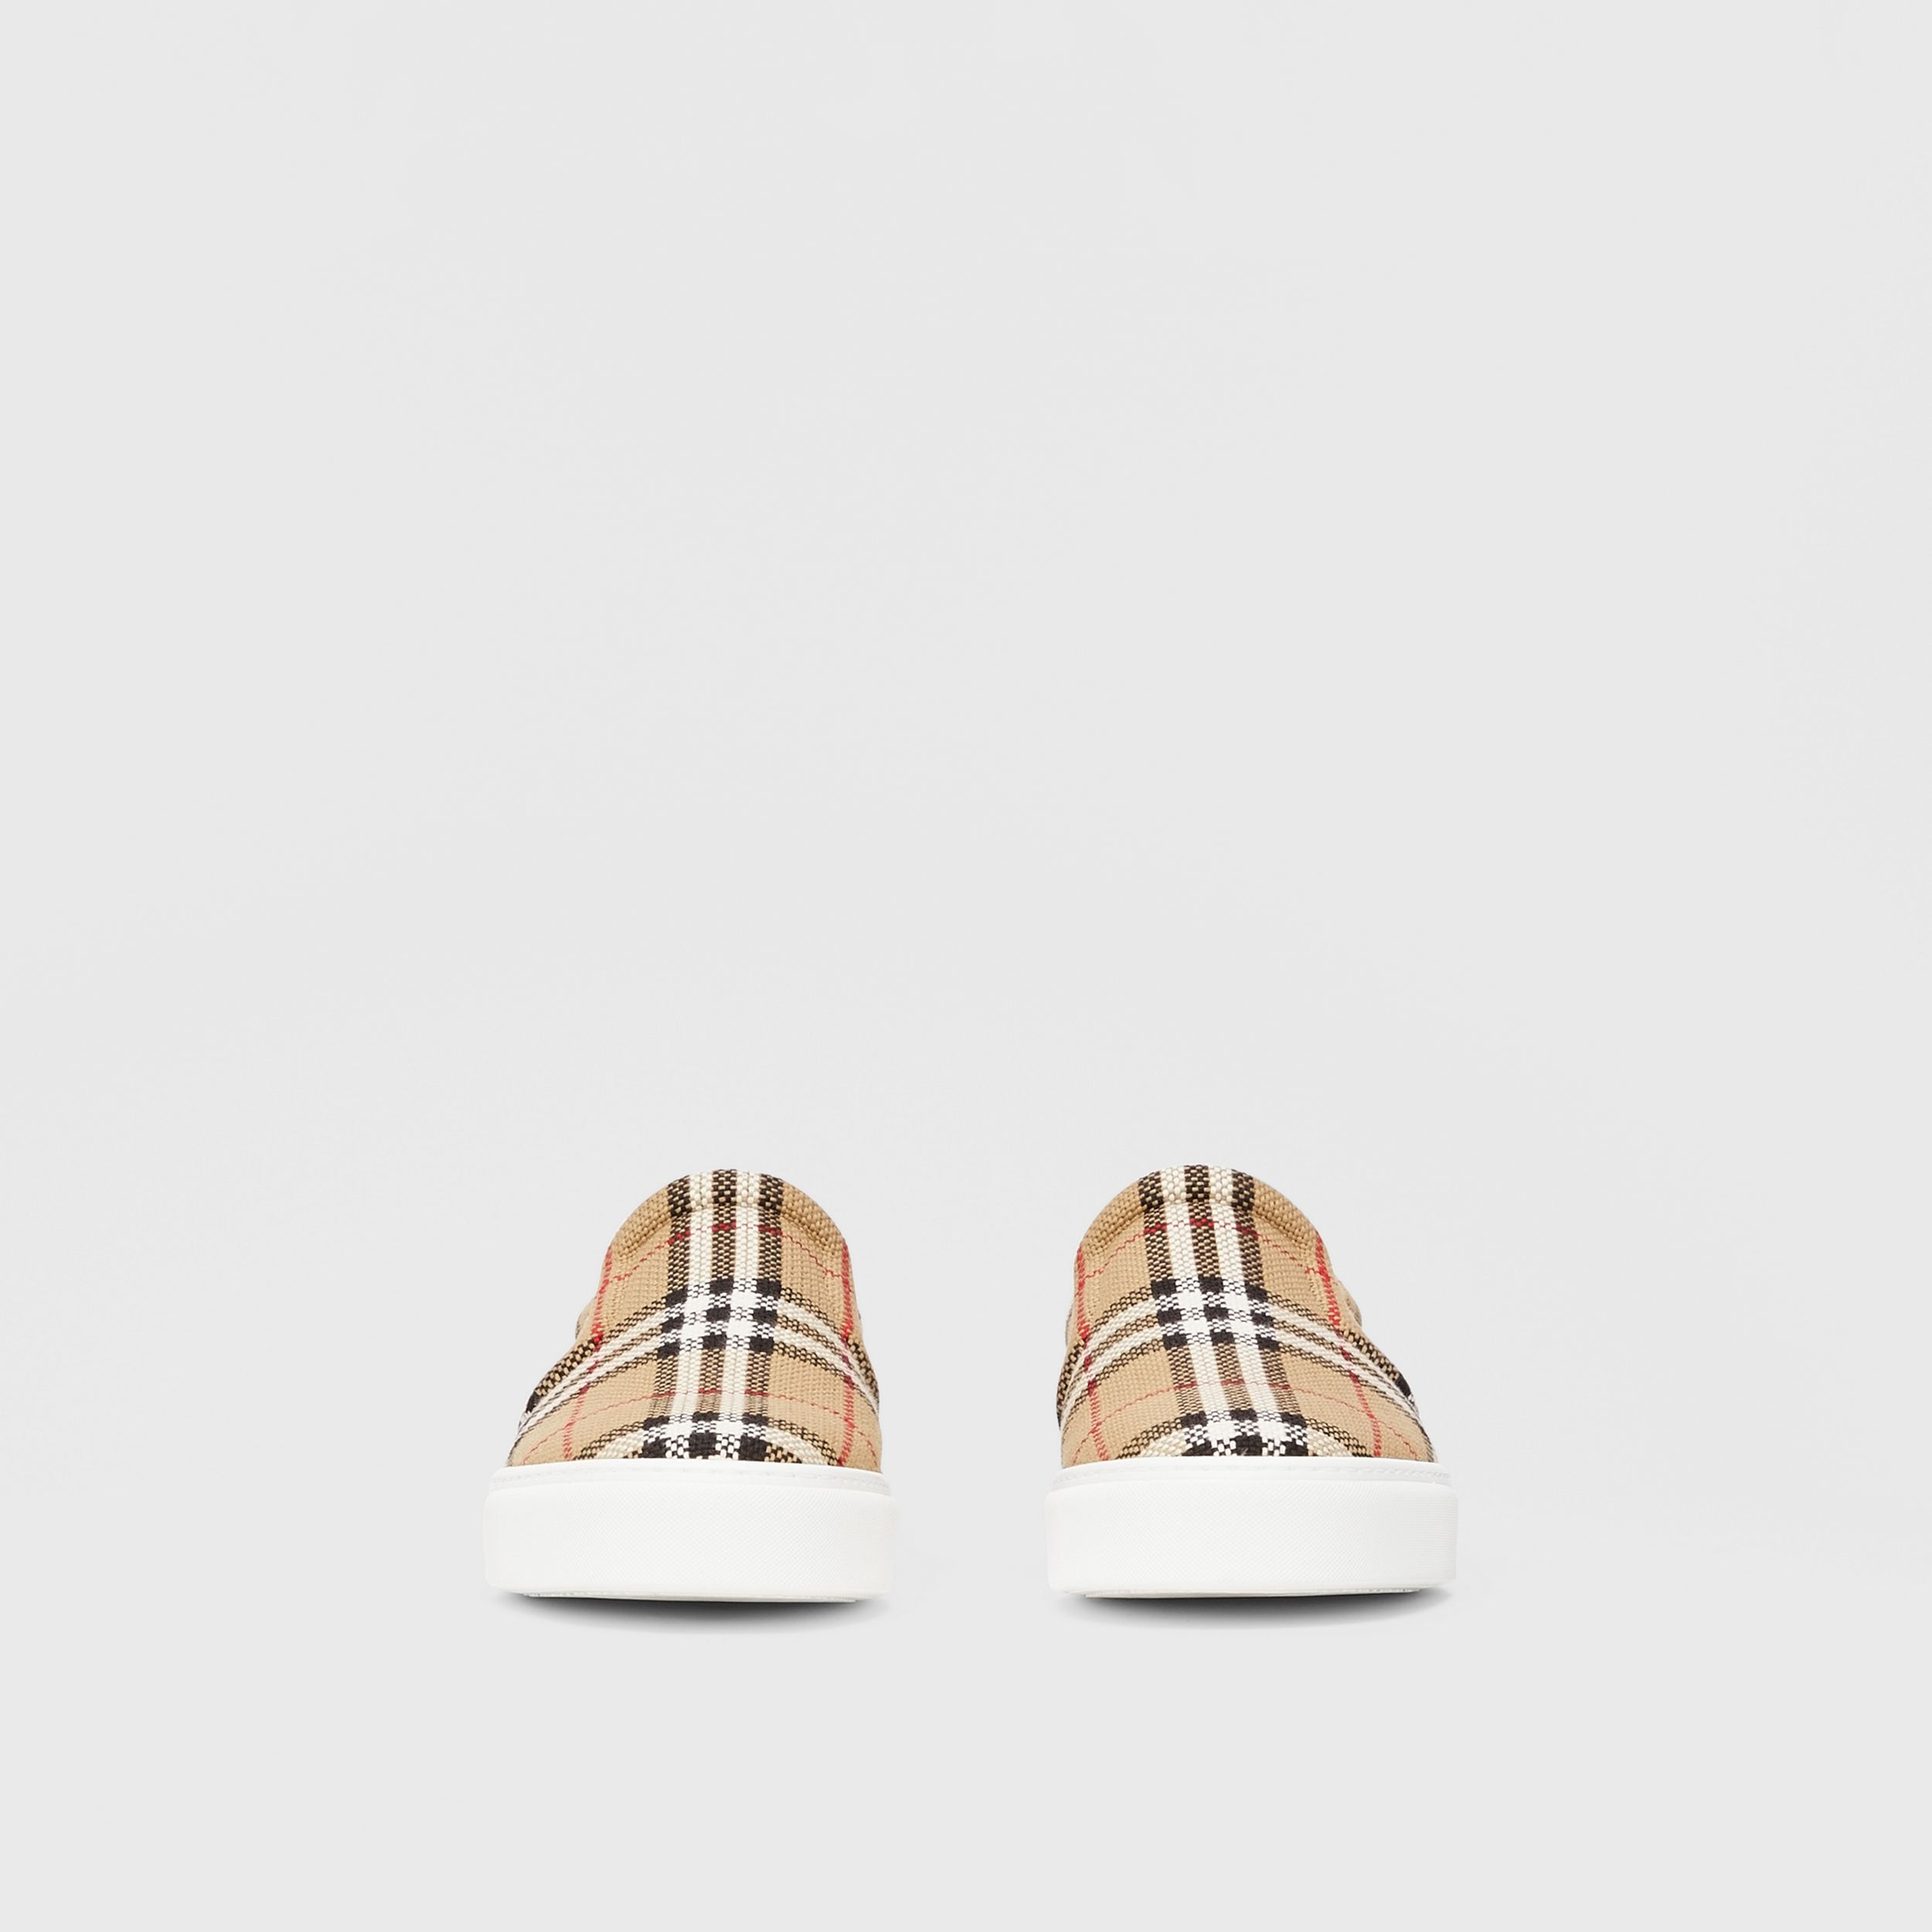 Bio-based Sole Latticed Cotton Slip-on Sneakers in Archive Beige - Men | Burberry - 3